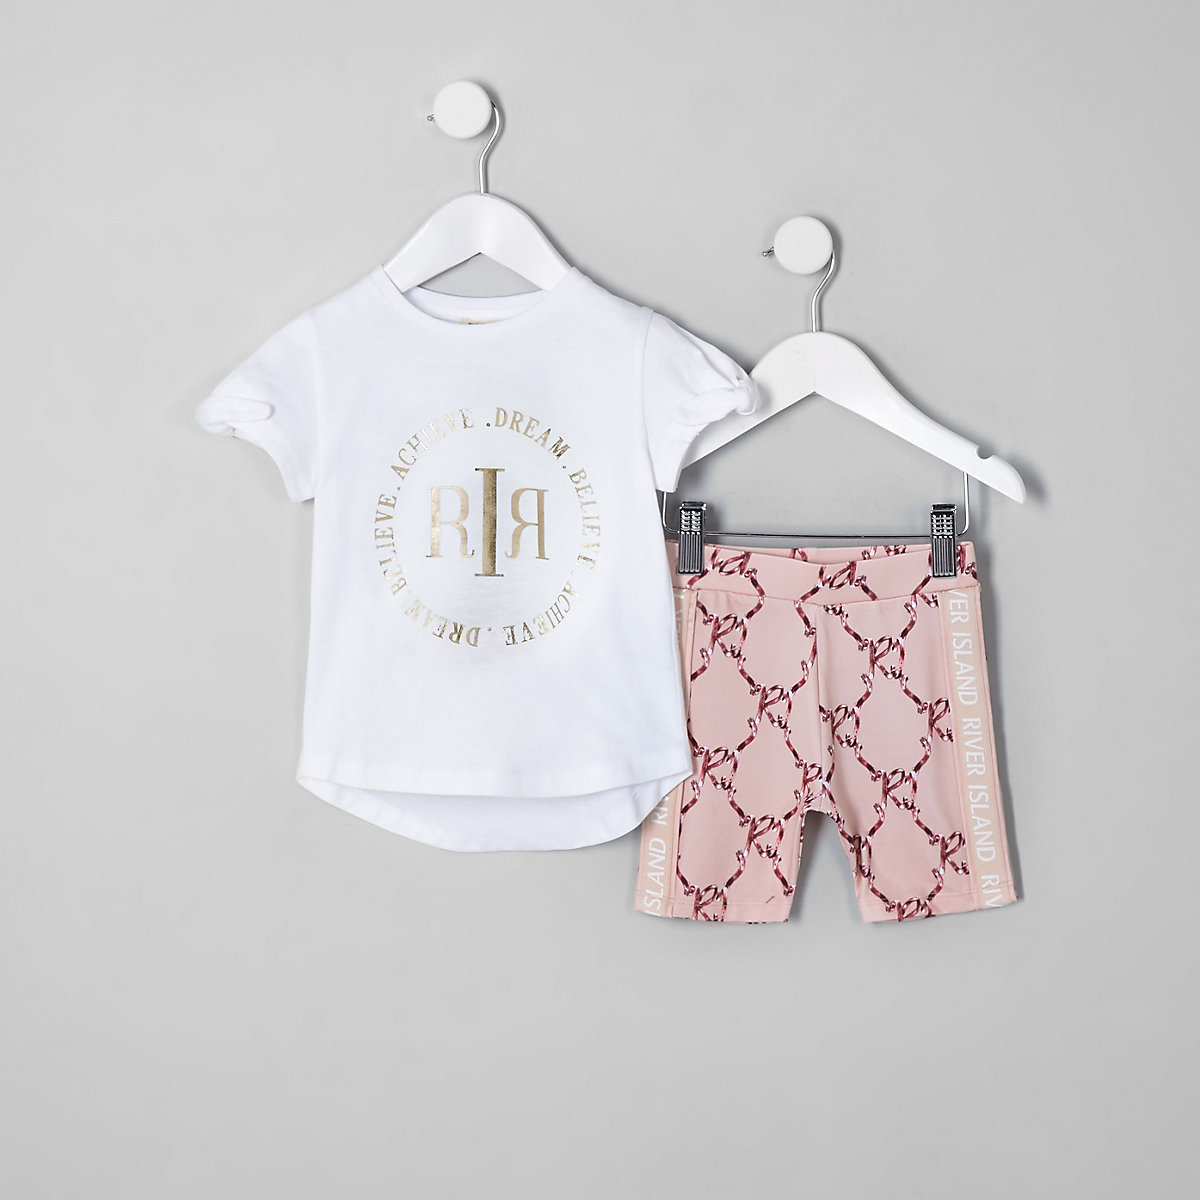 Mini girls RI Active white T-shirt outfit